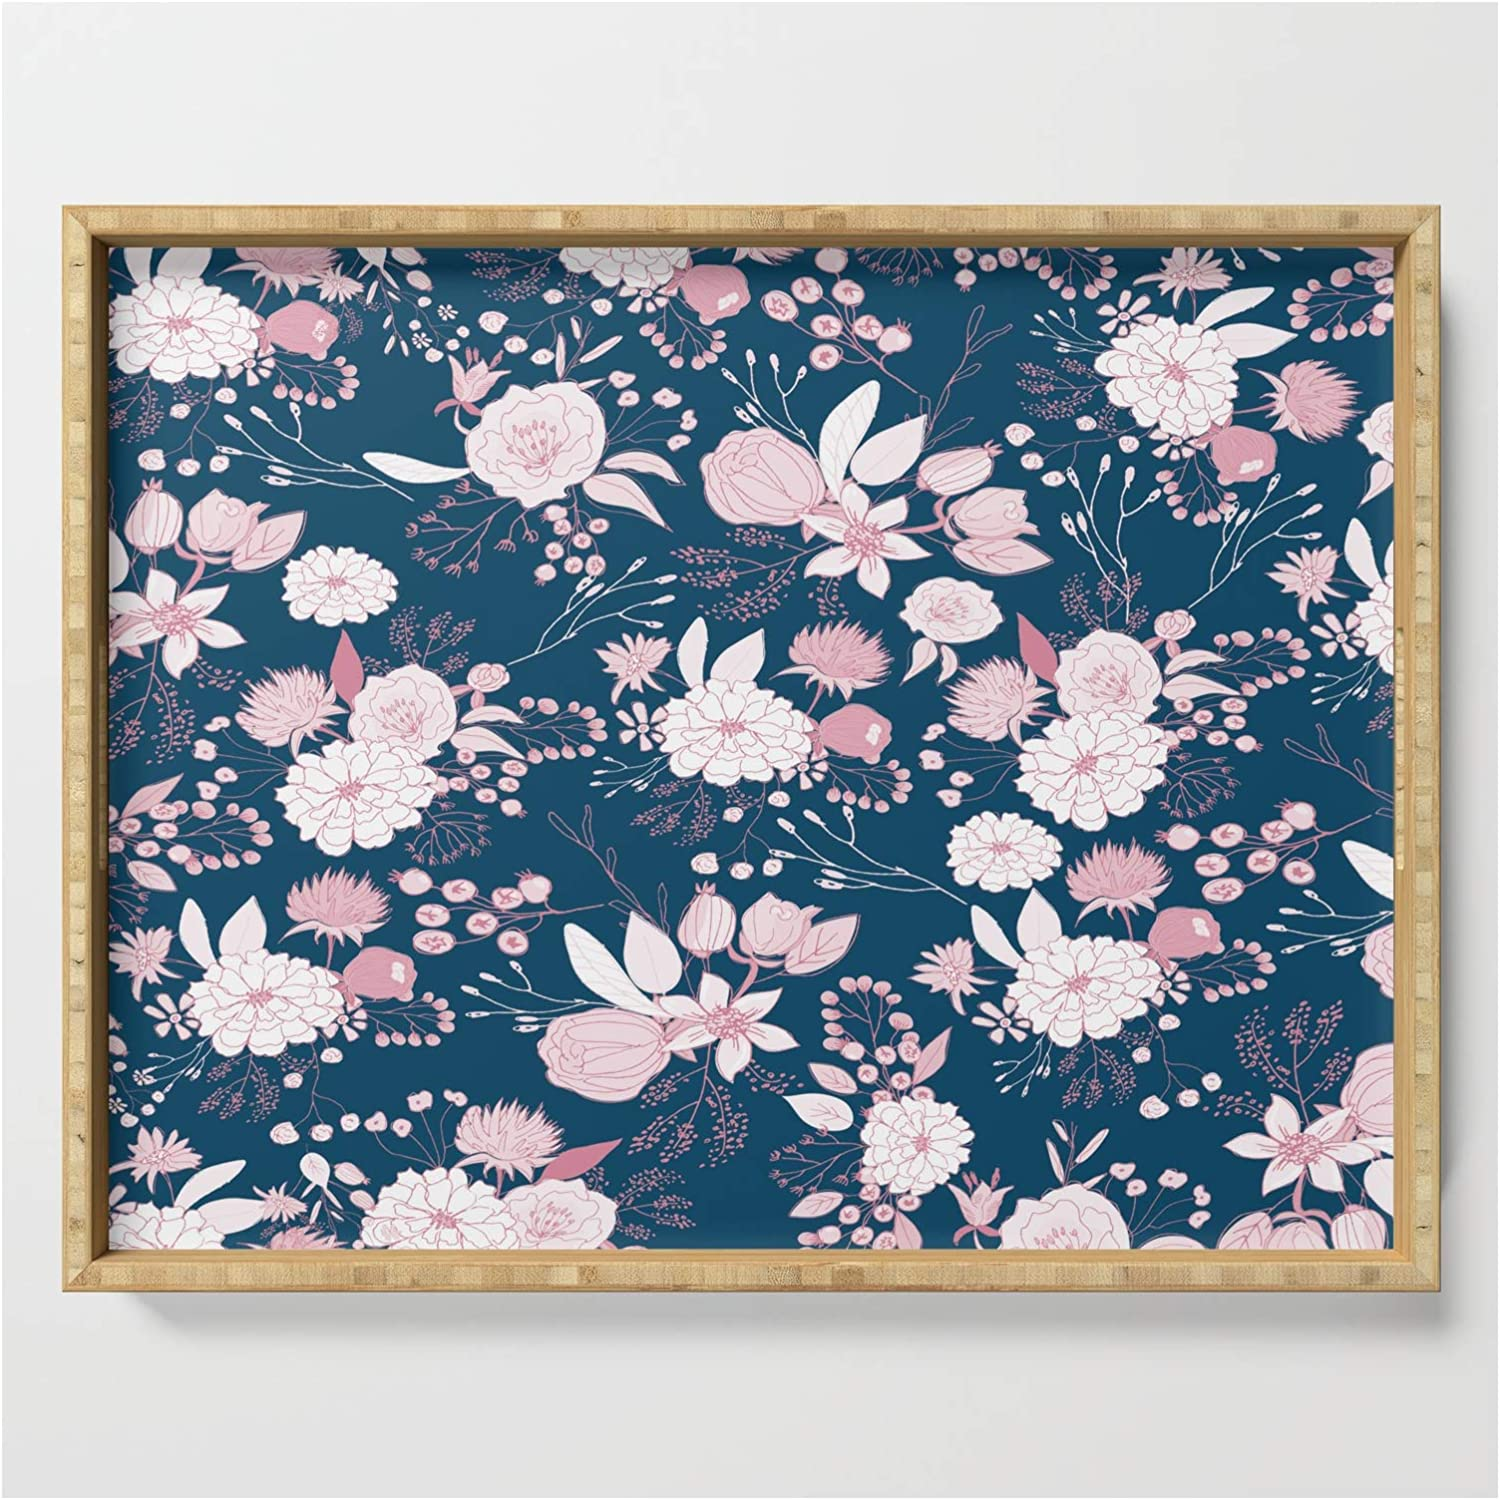 Elegant Mauve Pink cheap White Navy Sales of SALE items from new works Blue by Floral Rustic Water o